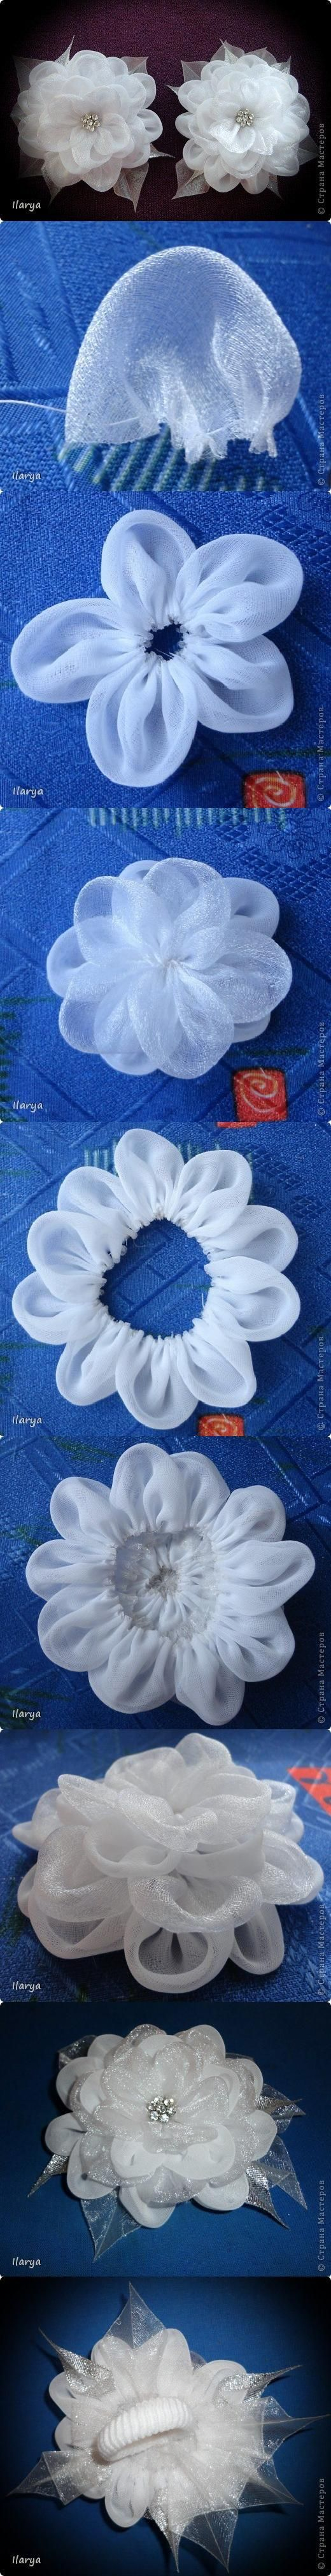 DIY Fabric Lust Flower | FabDiy